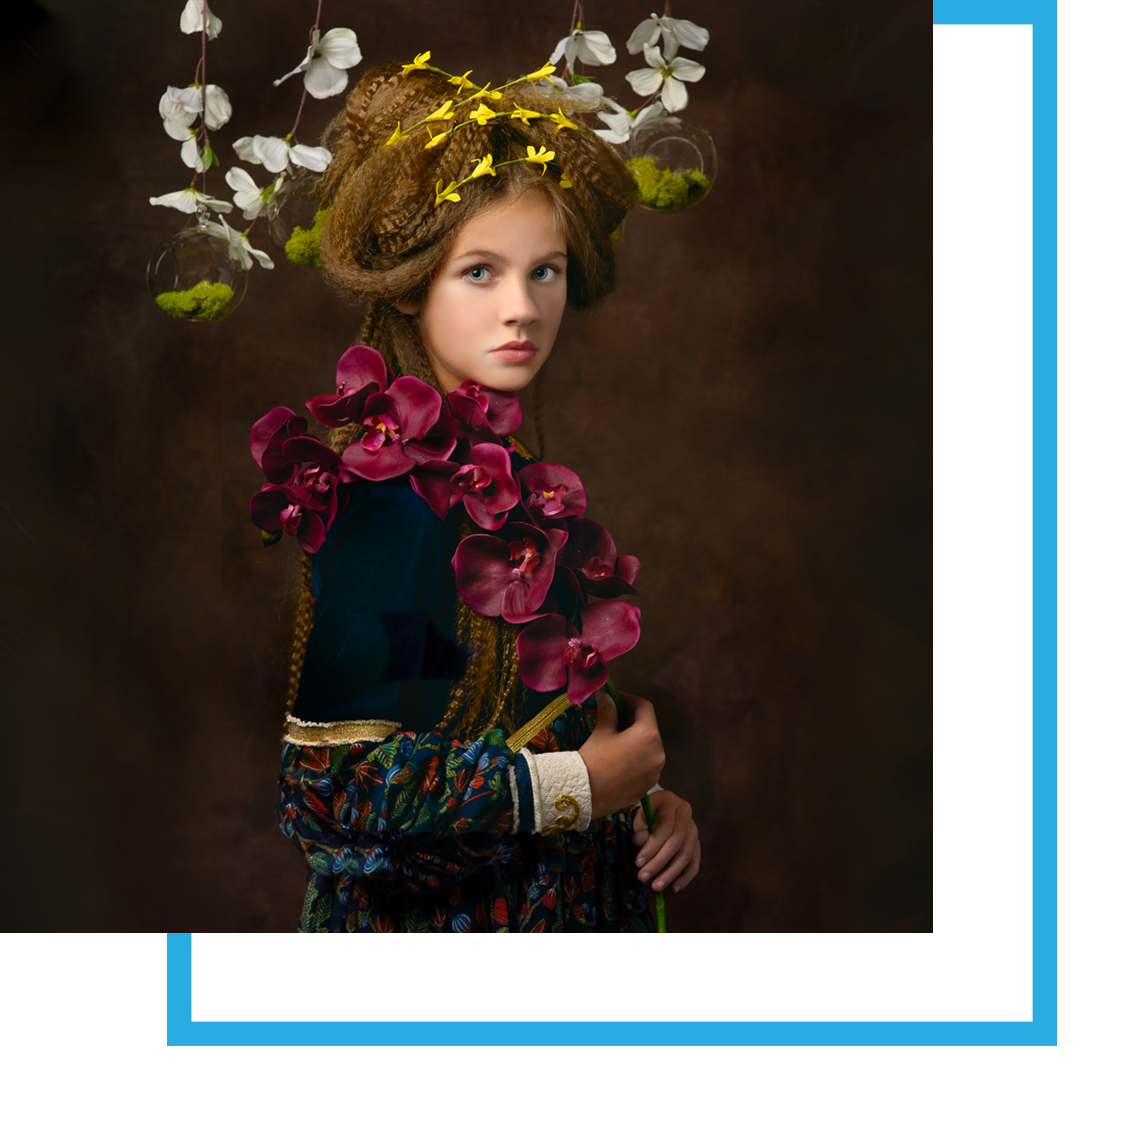 epphotography-umc-girl-with-flowers.png